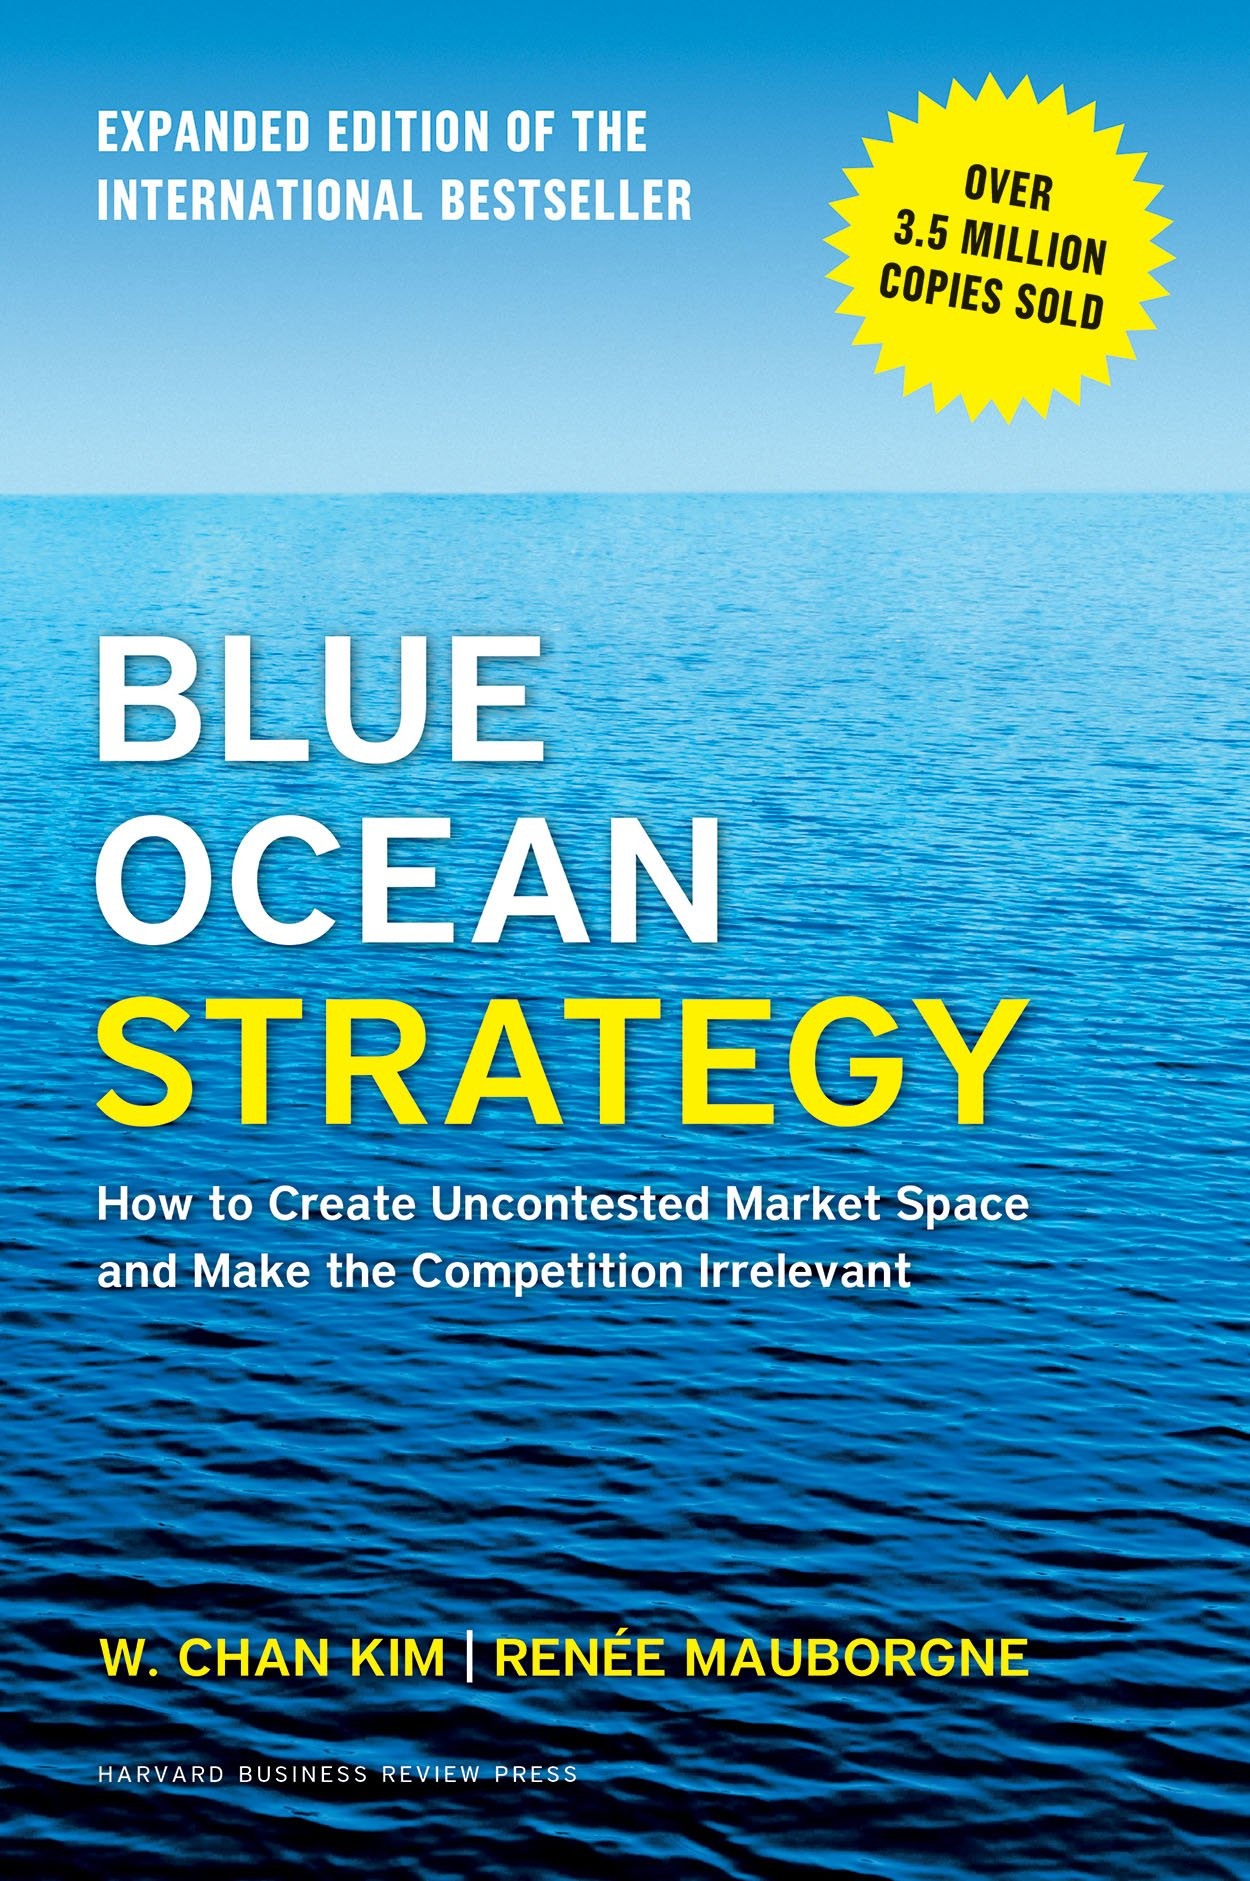 81IjbVUD%2B5L - Blue Ocean Strategy, Expanded Edition: How to Create Uncontested Market Space and Make the Competition Irrelevant